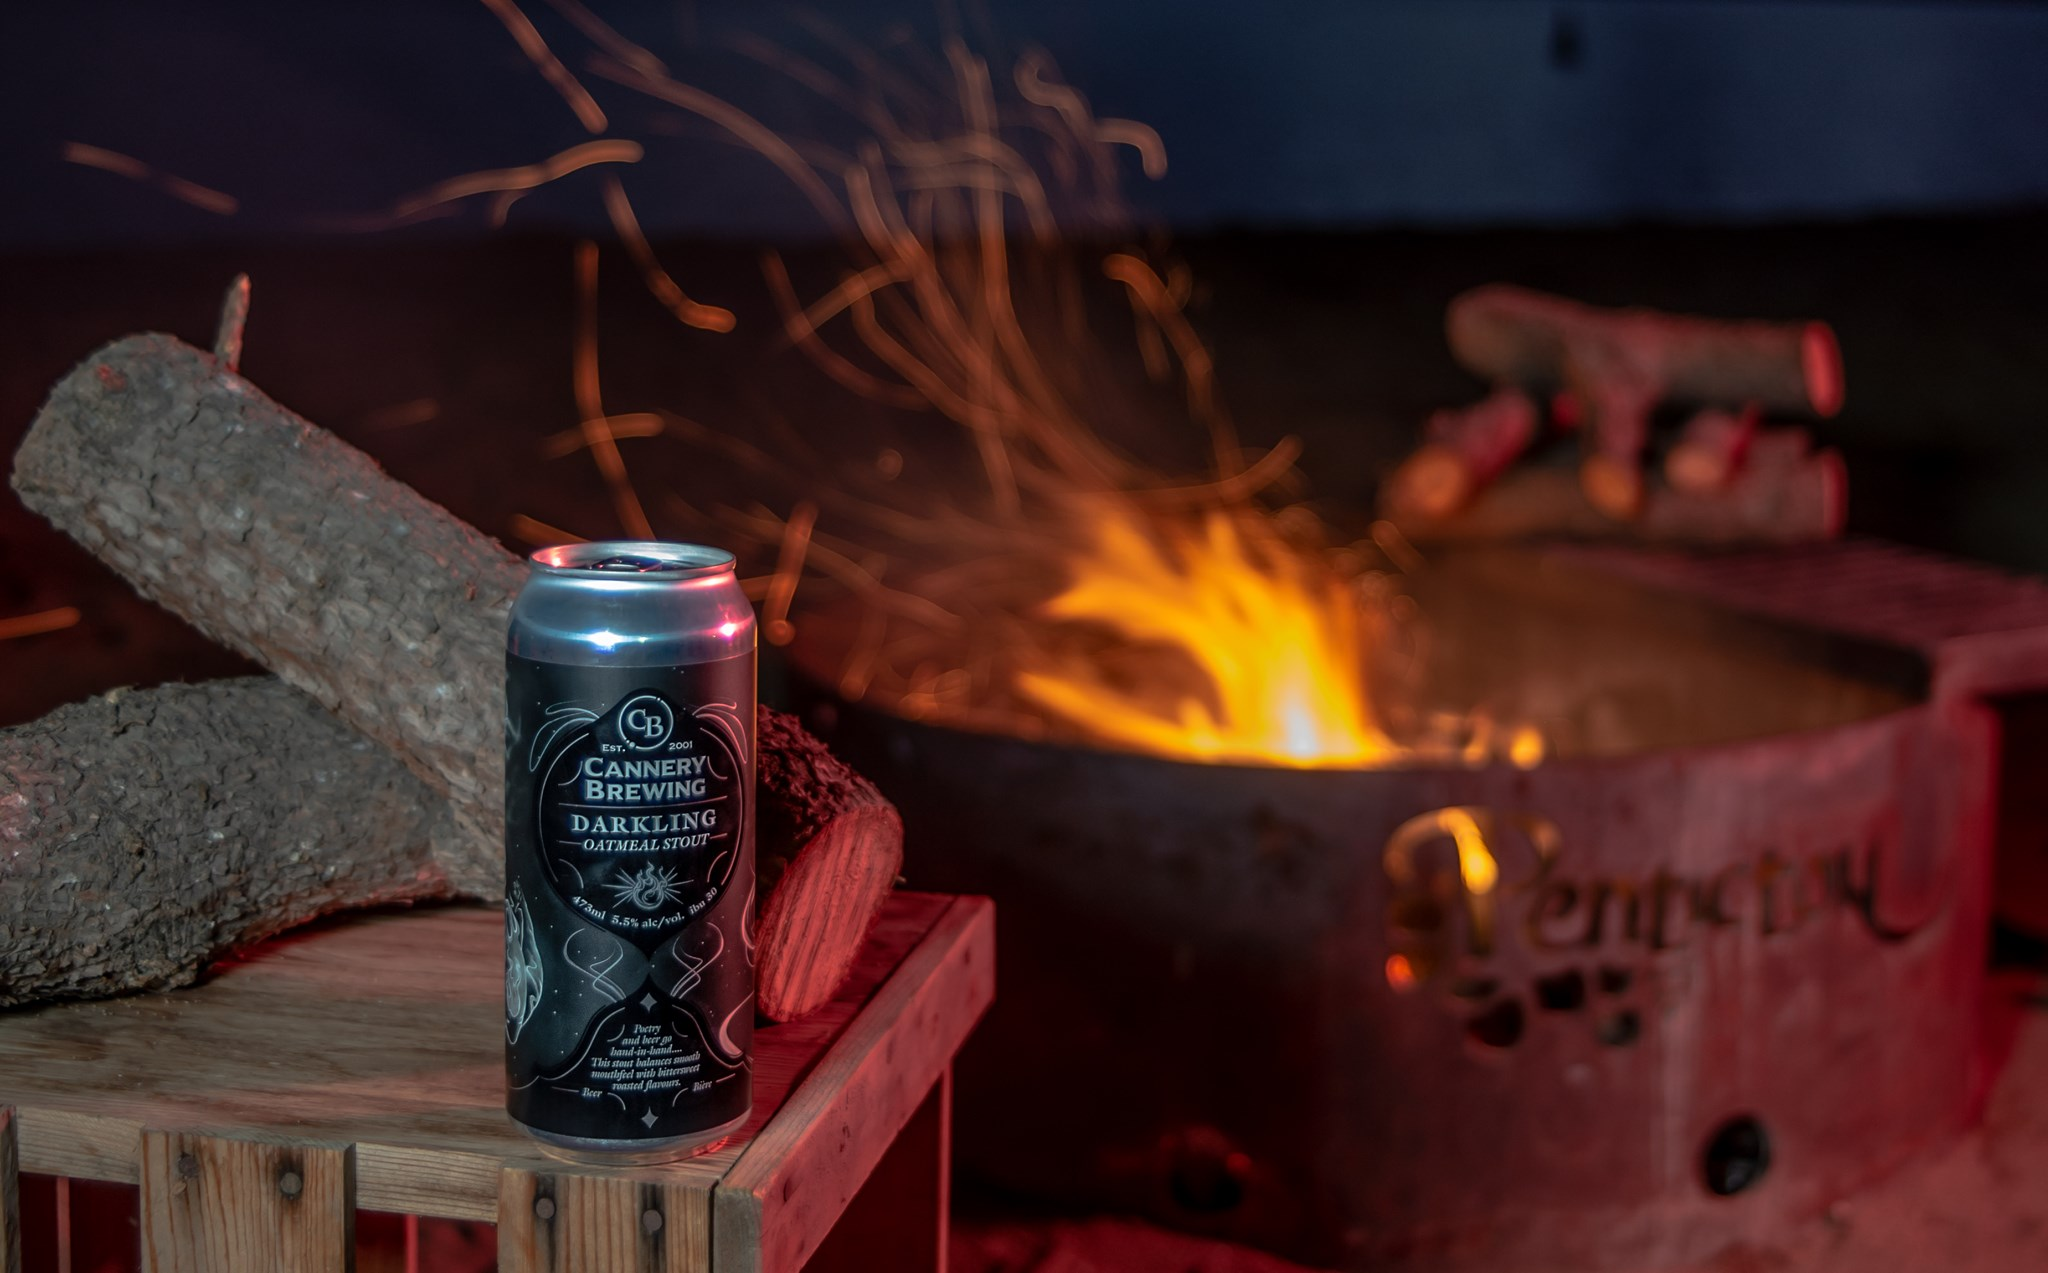 Beer of the Month: Cannery Brewing's Darkling Oatmeal Stout